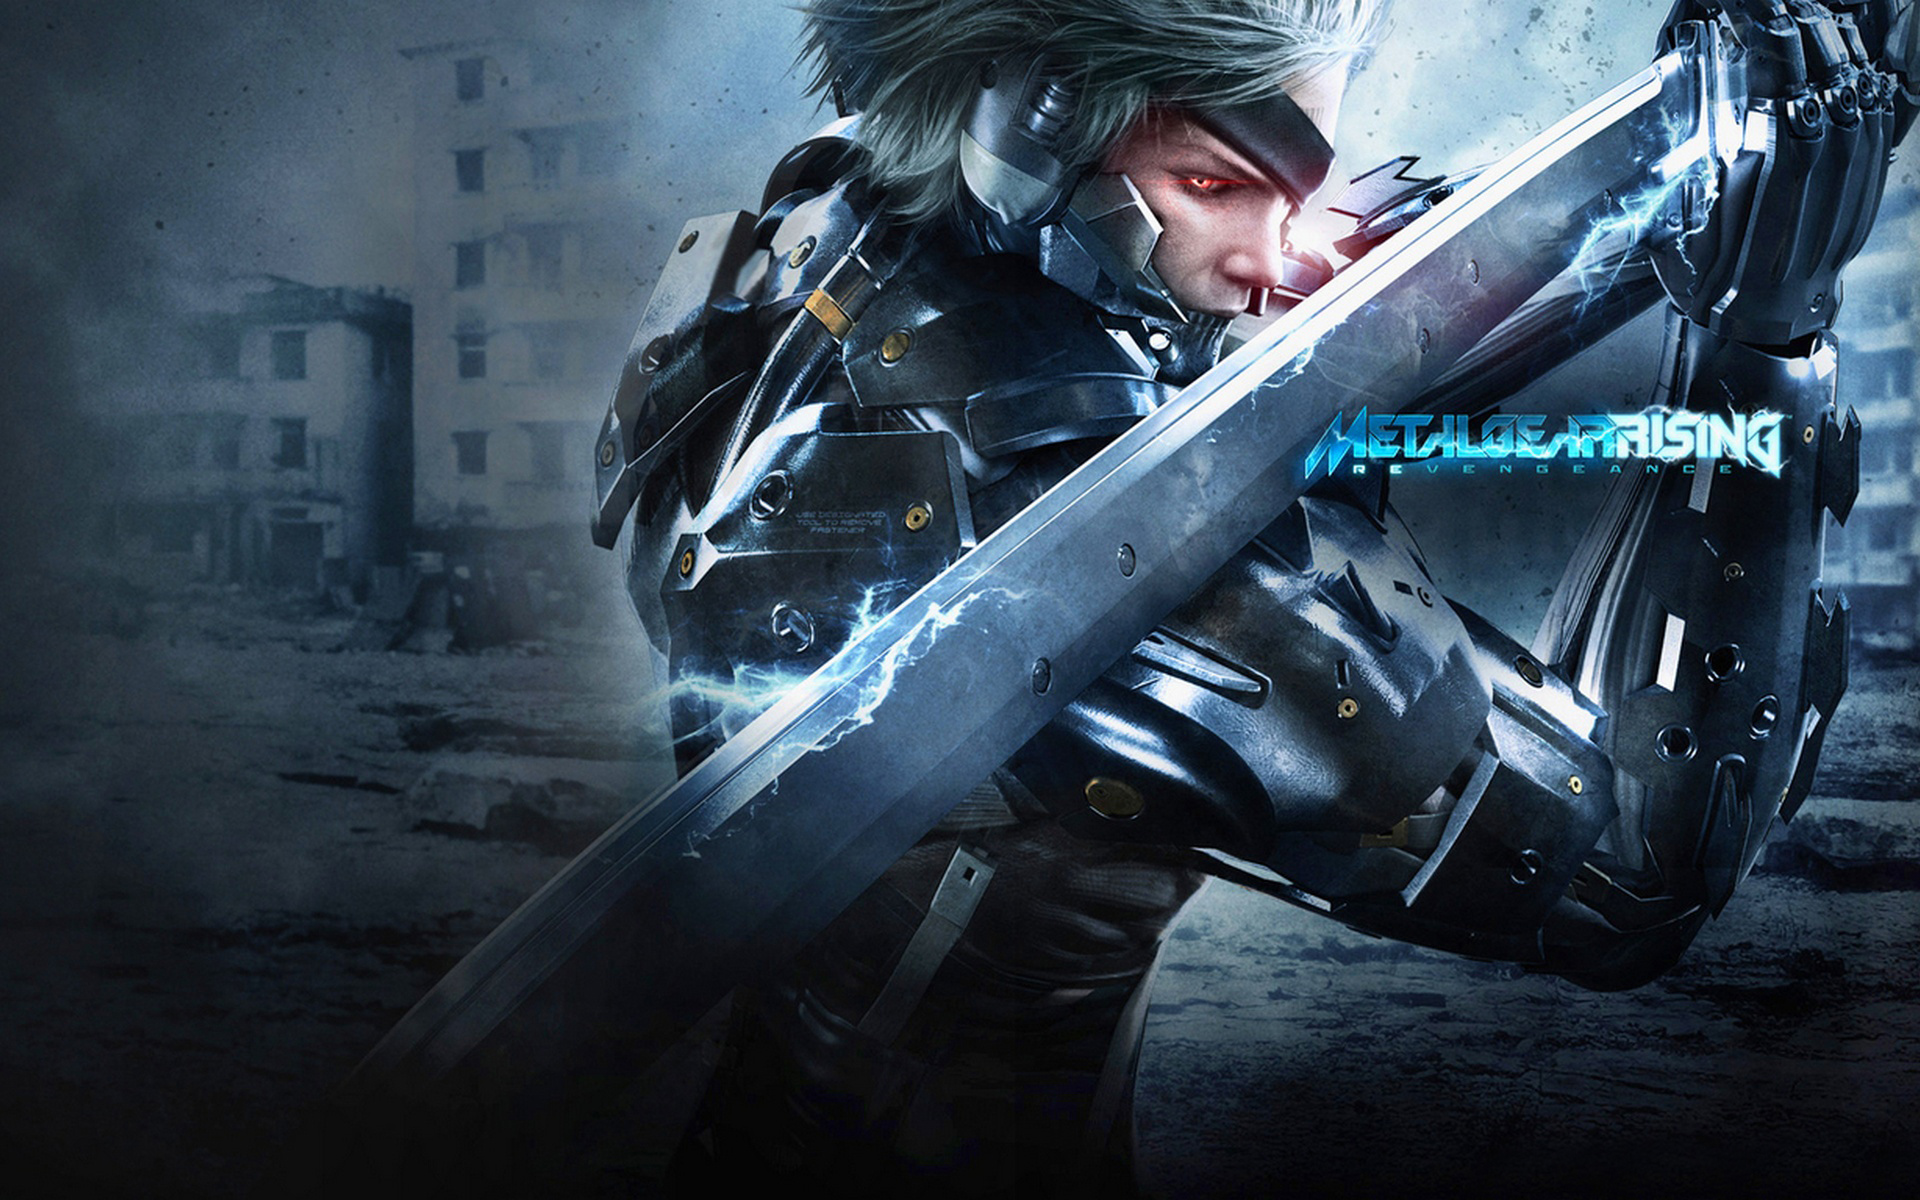 metal gear rising revengeance A